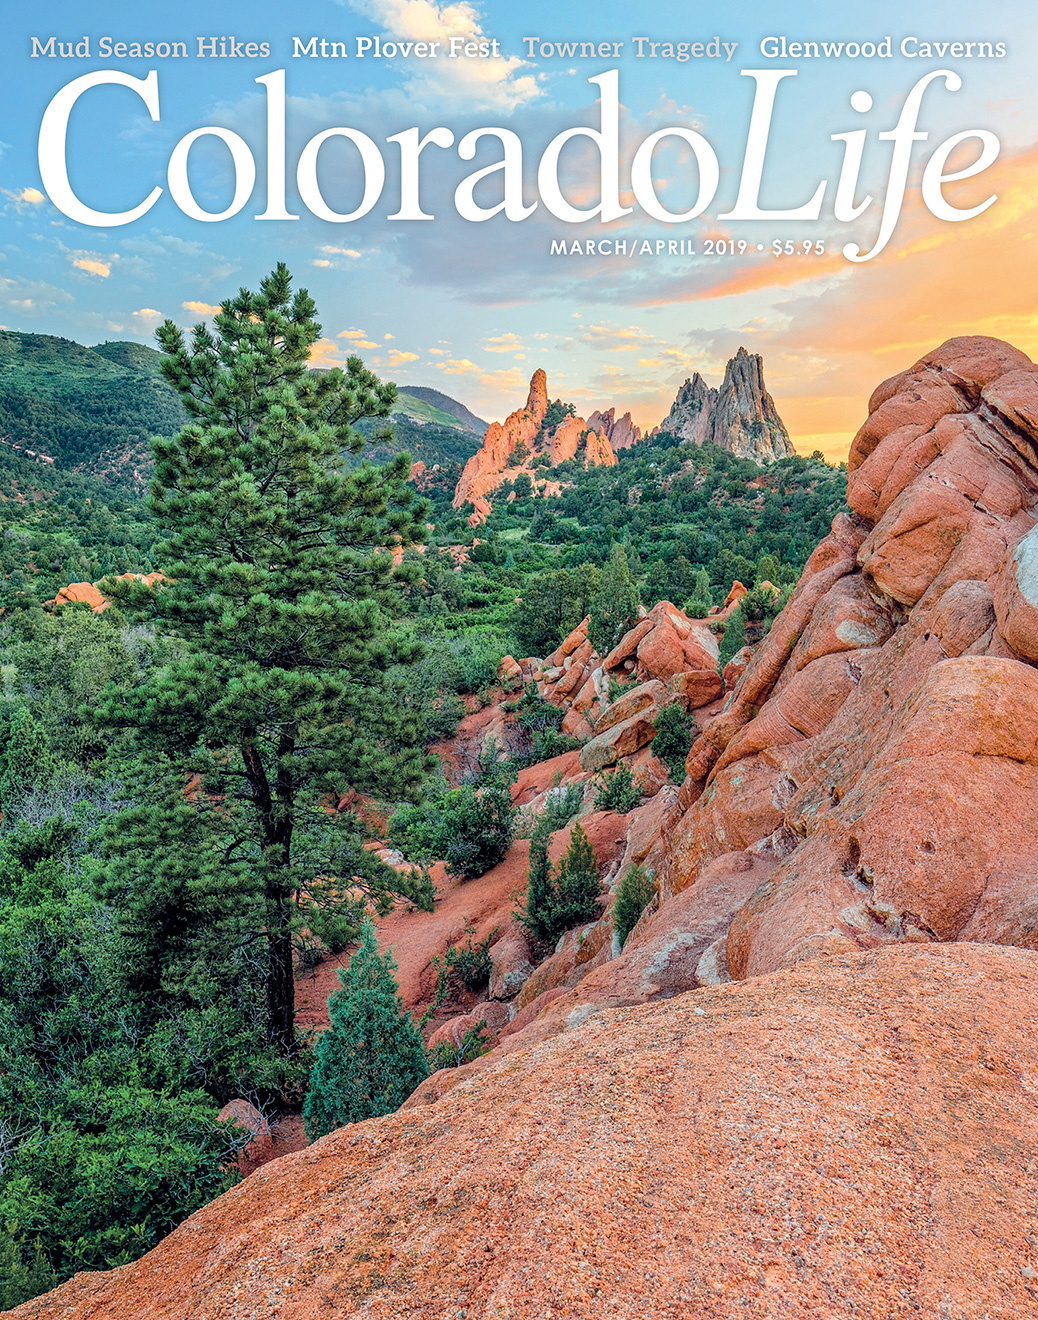 Colorado Life - March/April 2019 - Colorado Life Cover -  Picture